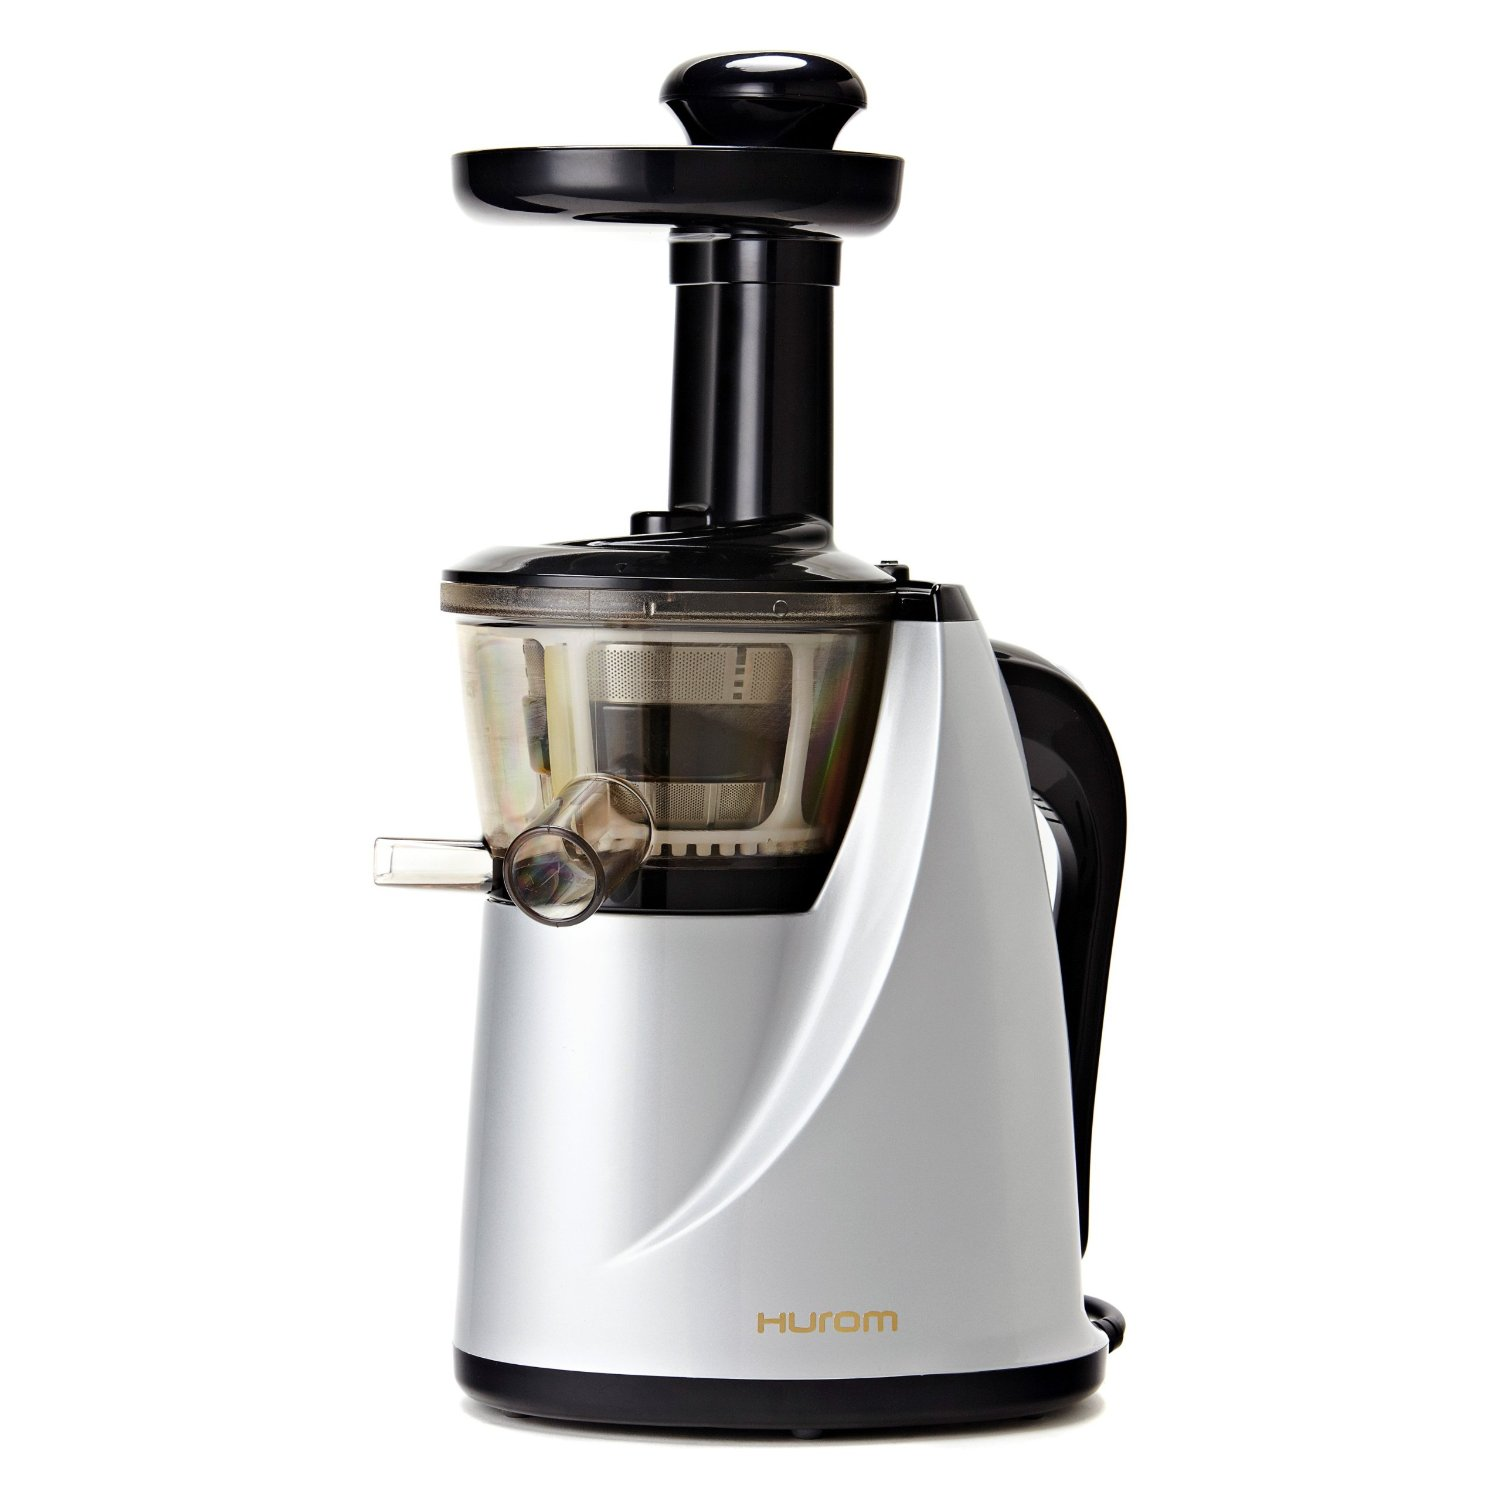 Best Masticating Juicer Recipes : Hurom Juicer Reviews